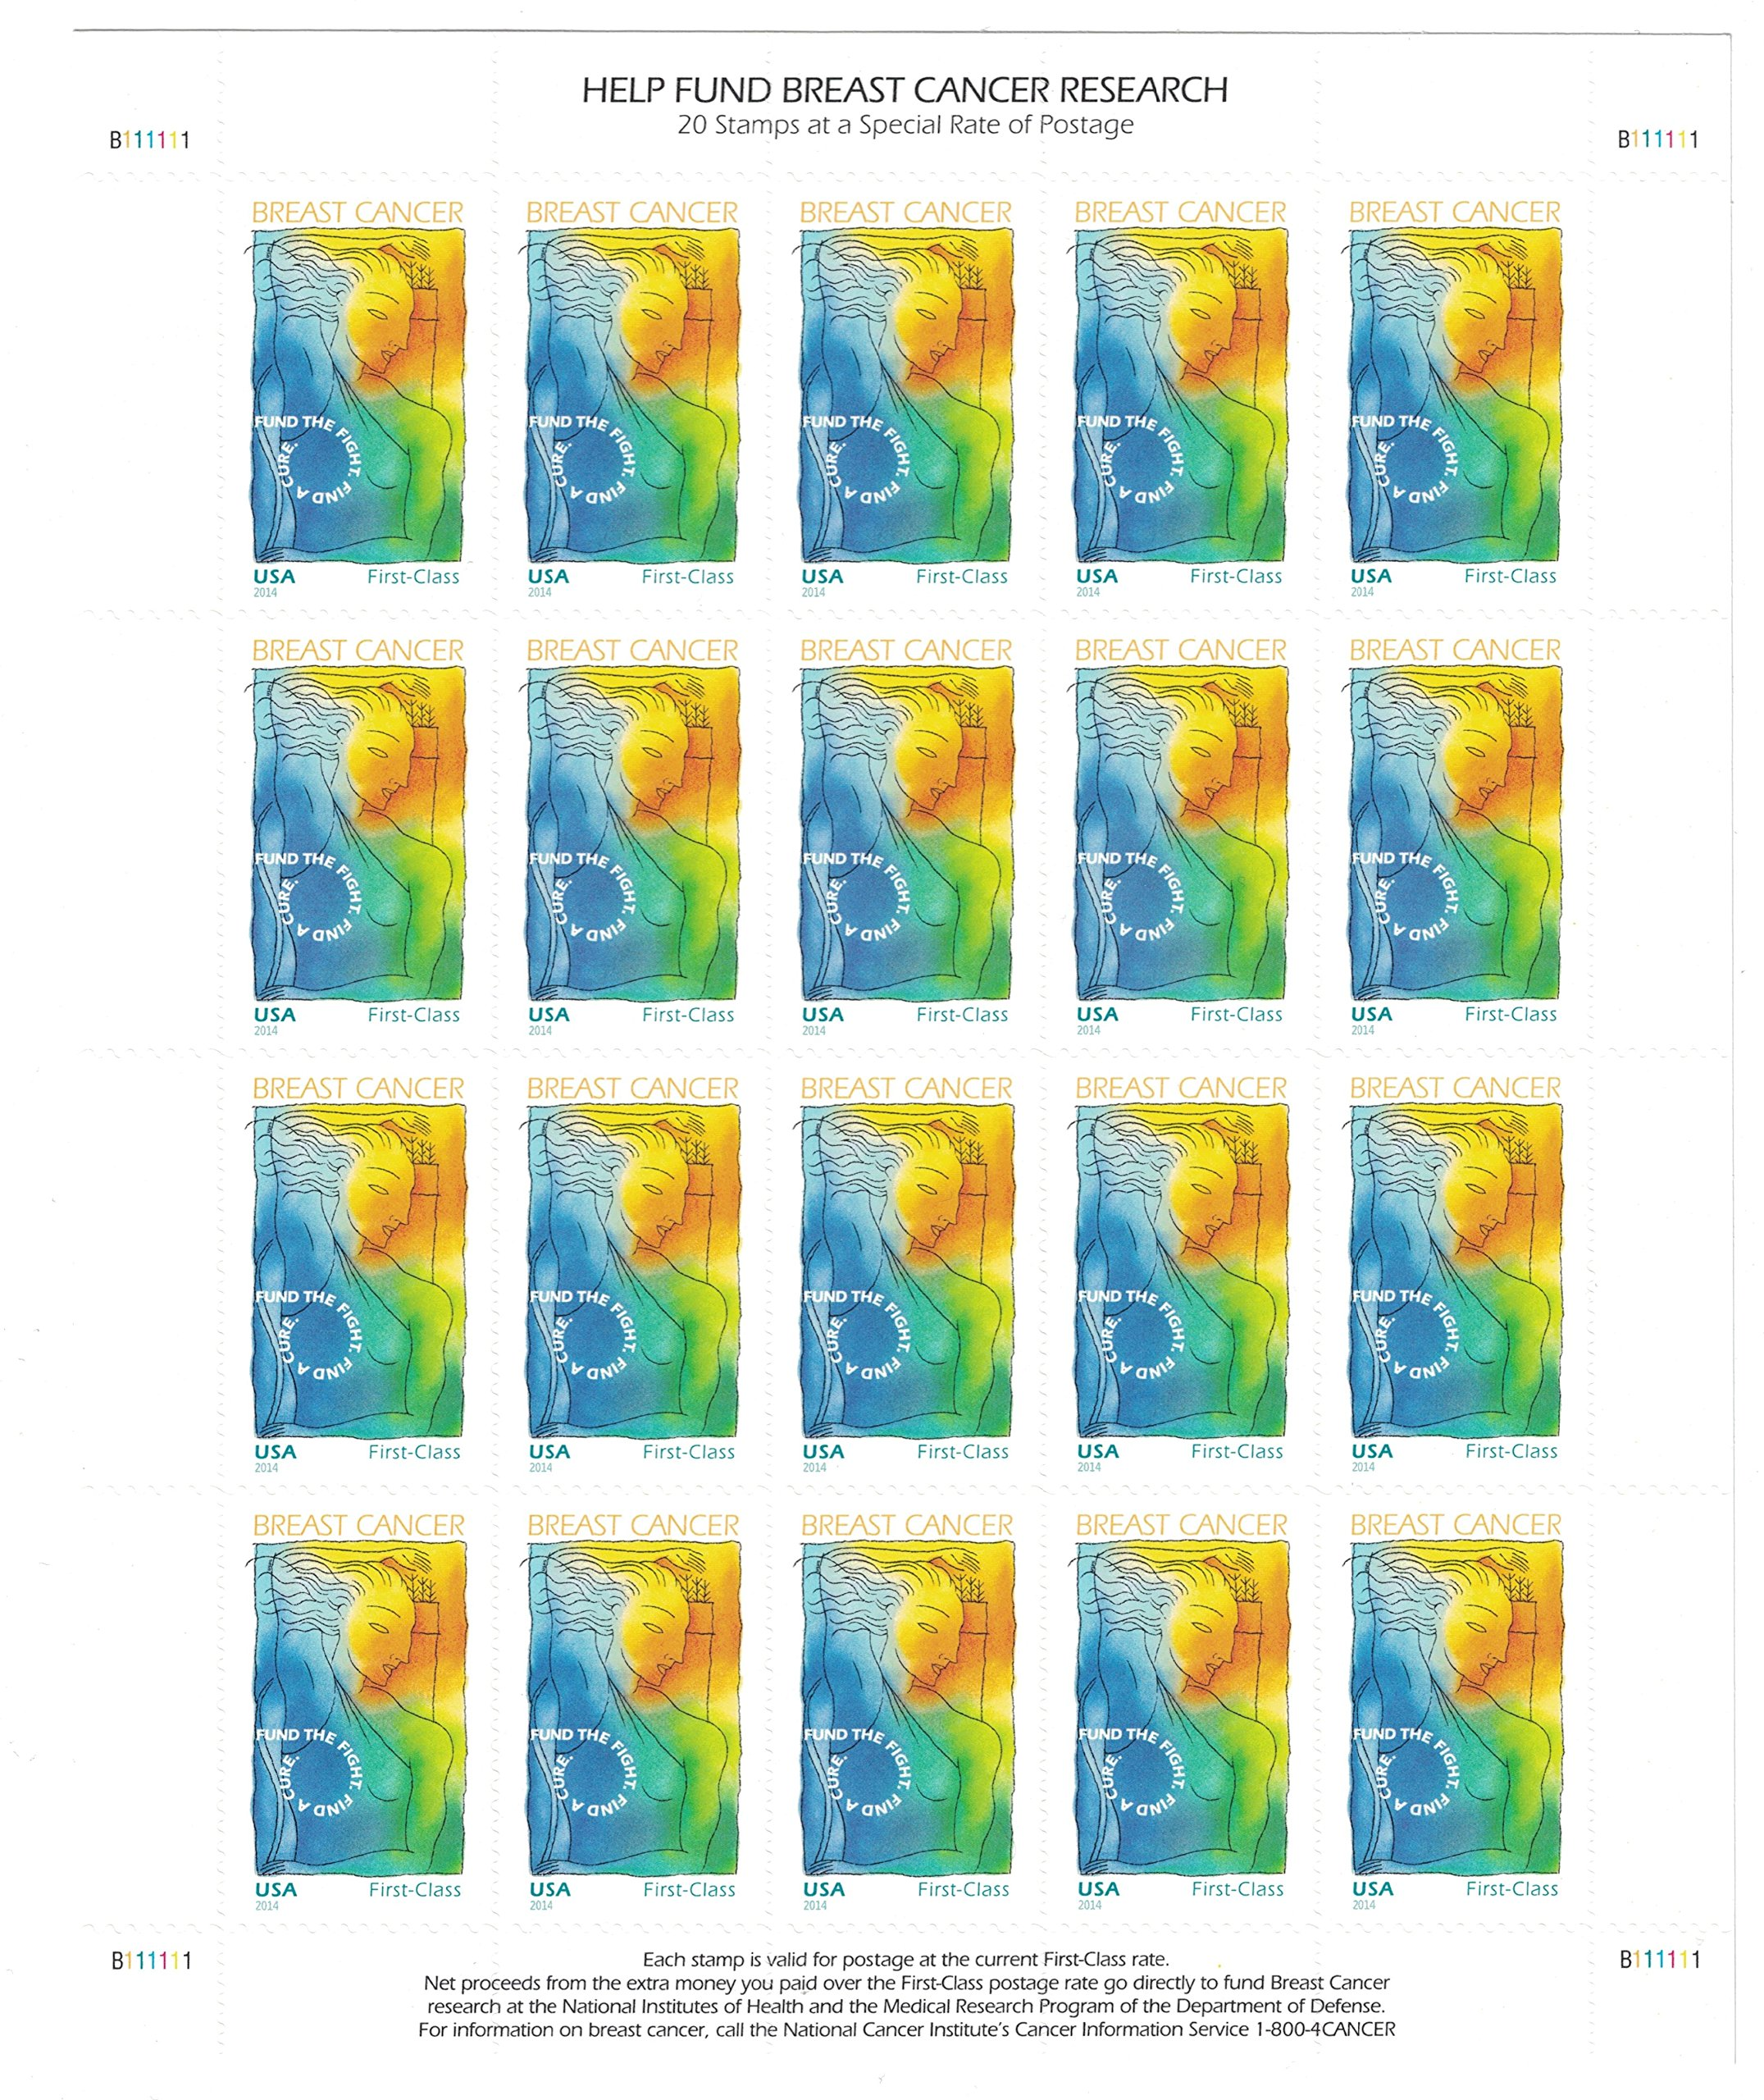 USPS Breast Cancer Research Forever Stamps - Sheet of 20 Semipostal Stamps